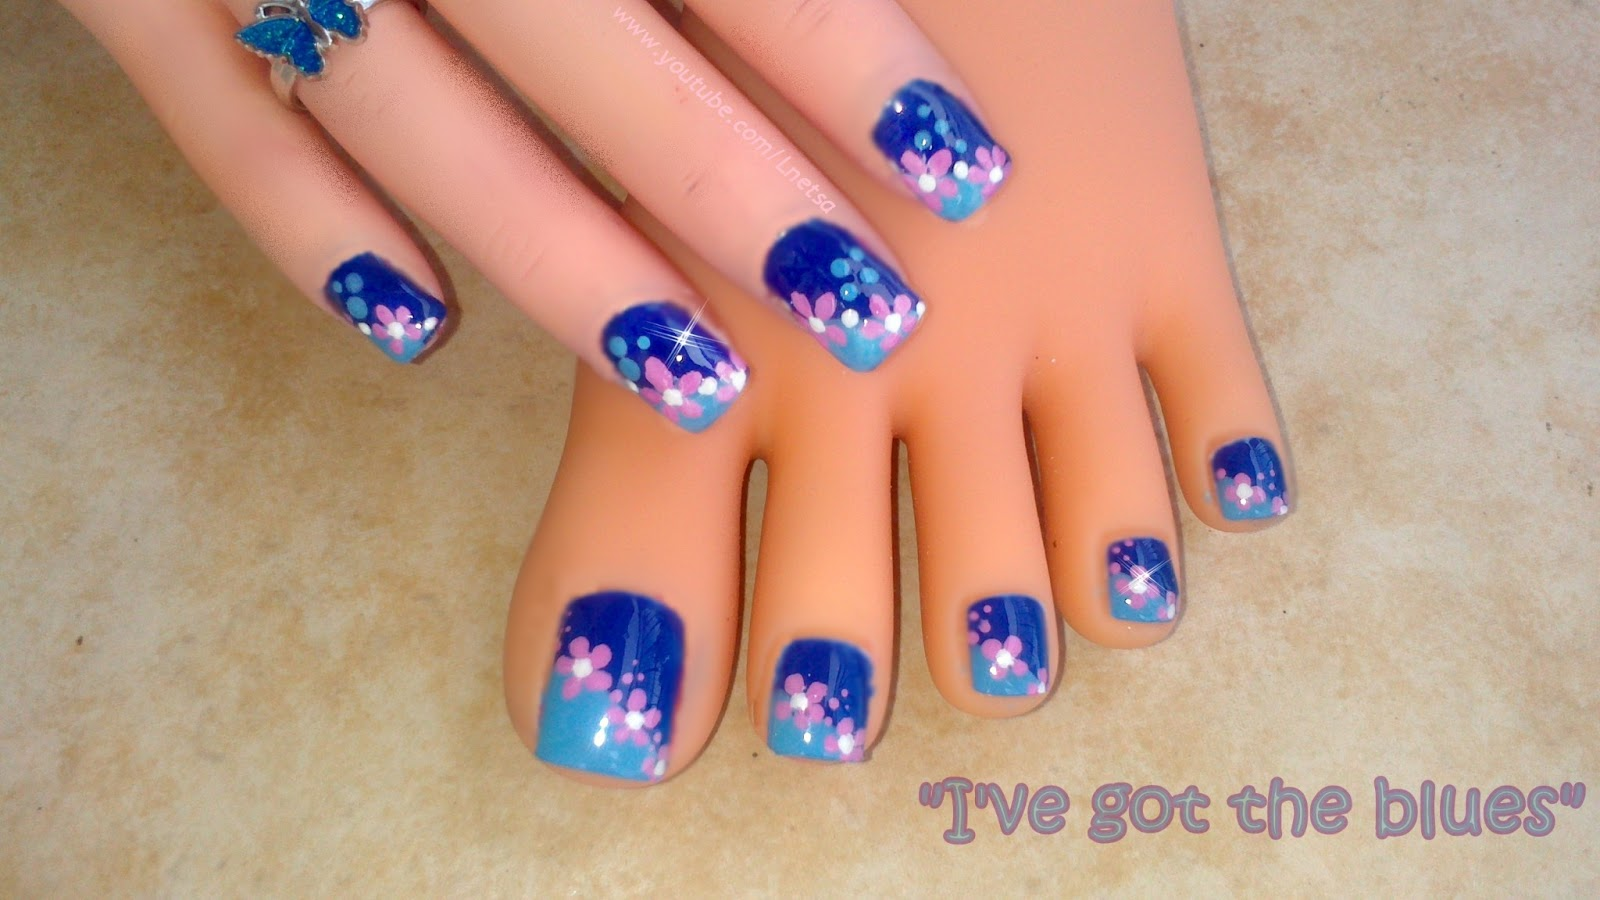 Lnetsa \'s nailart: Toe nail design and short nails\' version - \